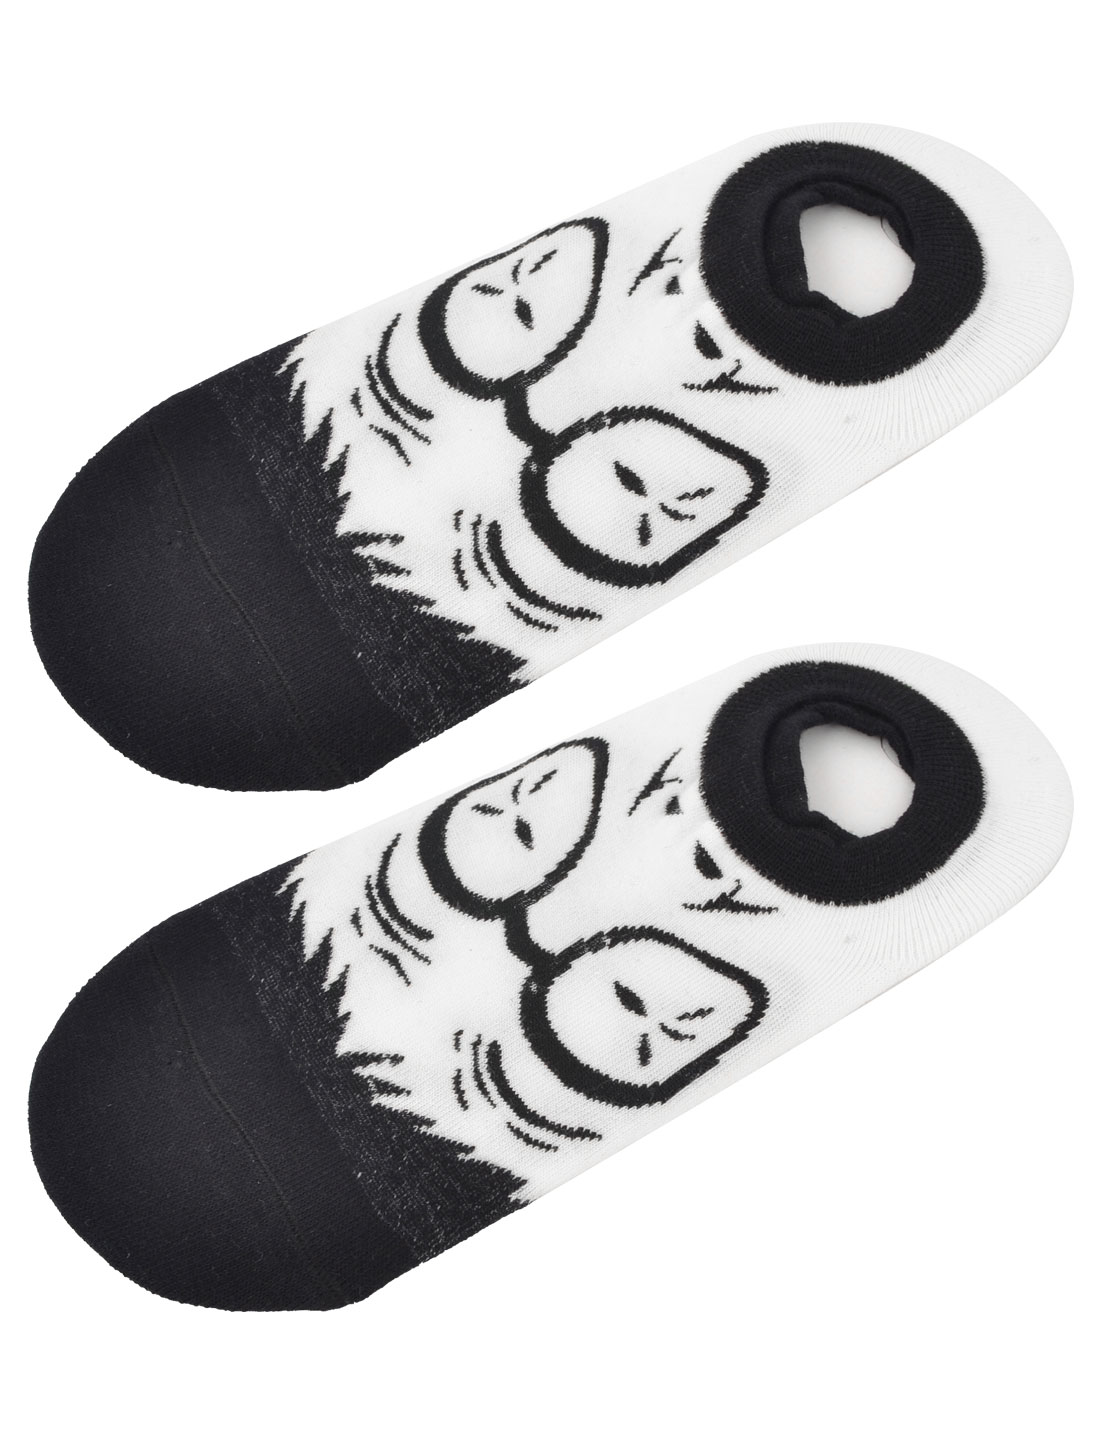 Unisex Elastic Cuff Surprise Expression Low Cut Boat Socks Black White Pair